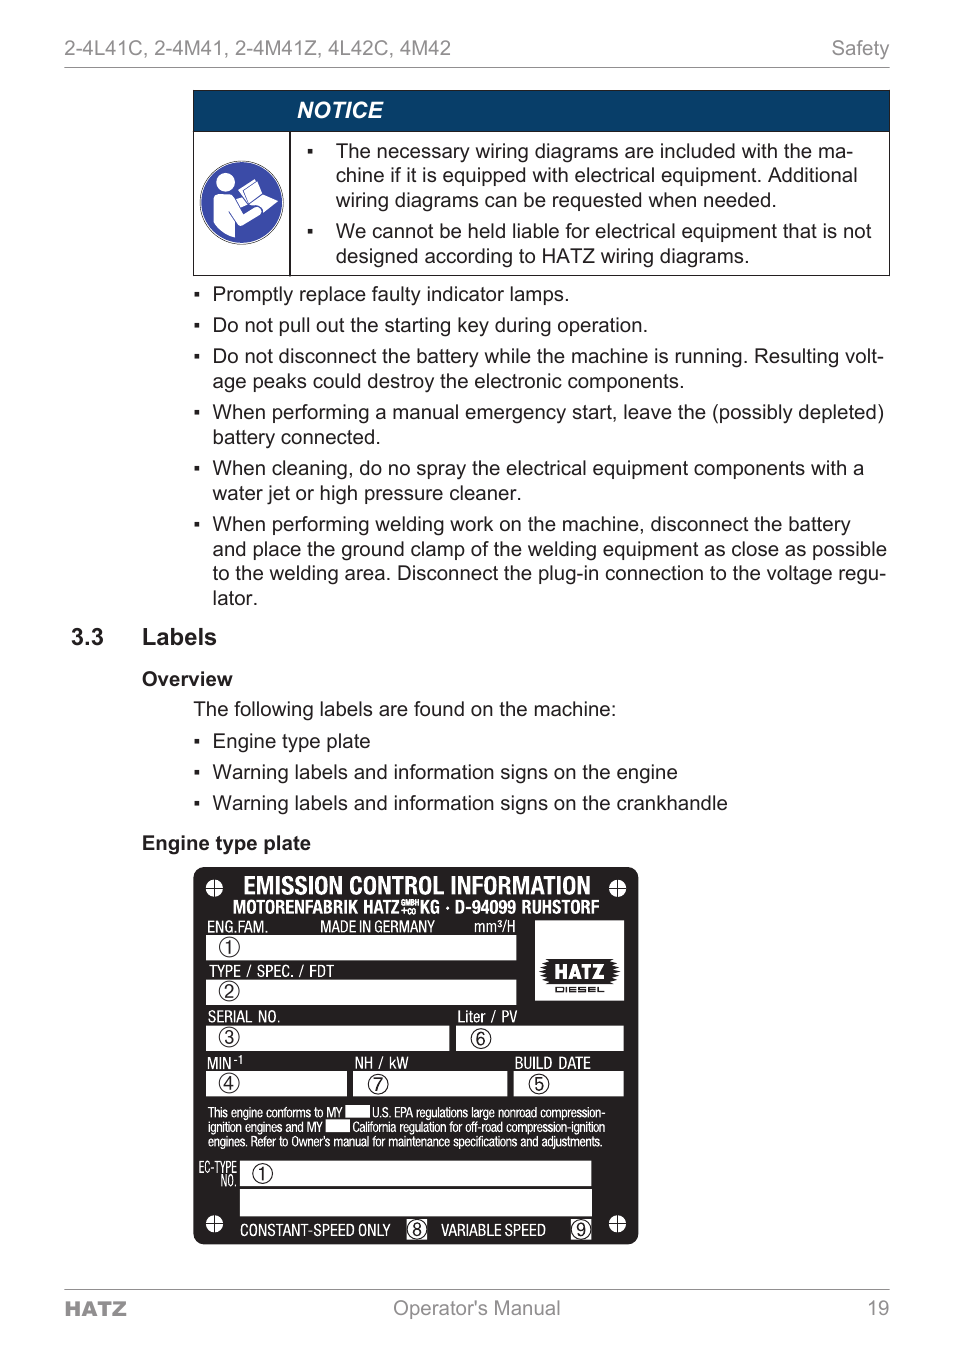 Labels   HATZ sel 4M42 User Manual   Page 19 / 105 on